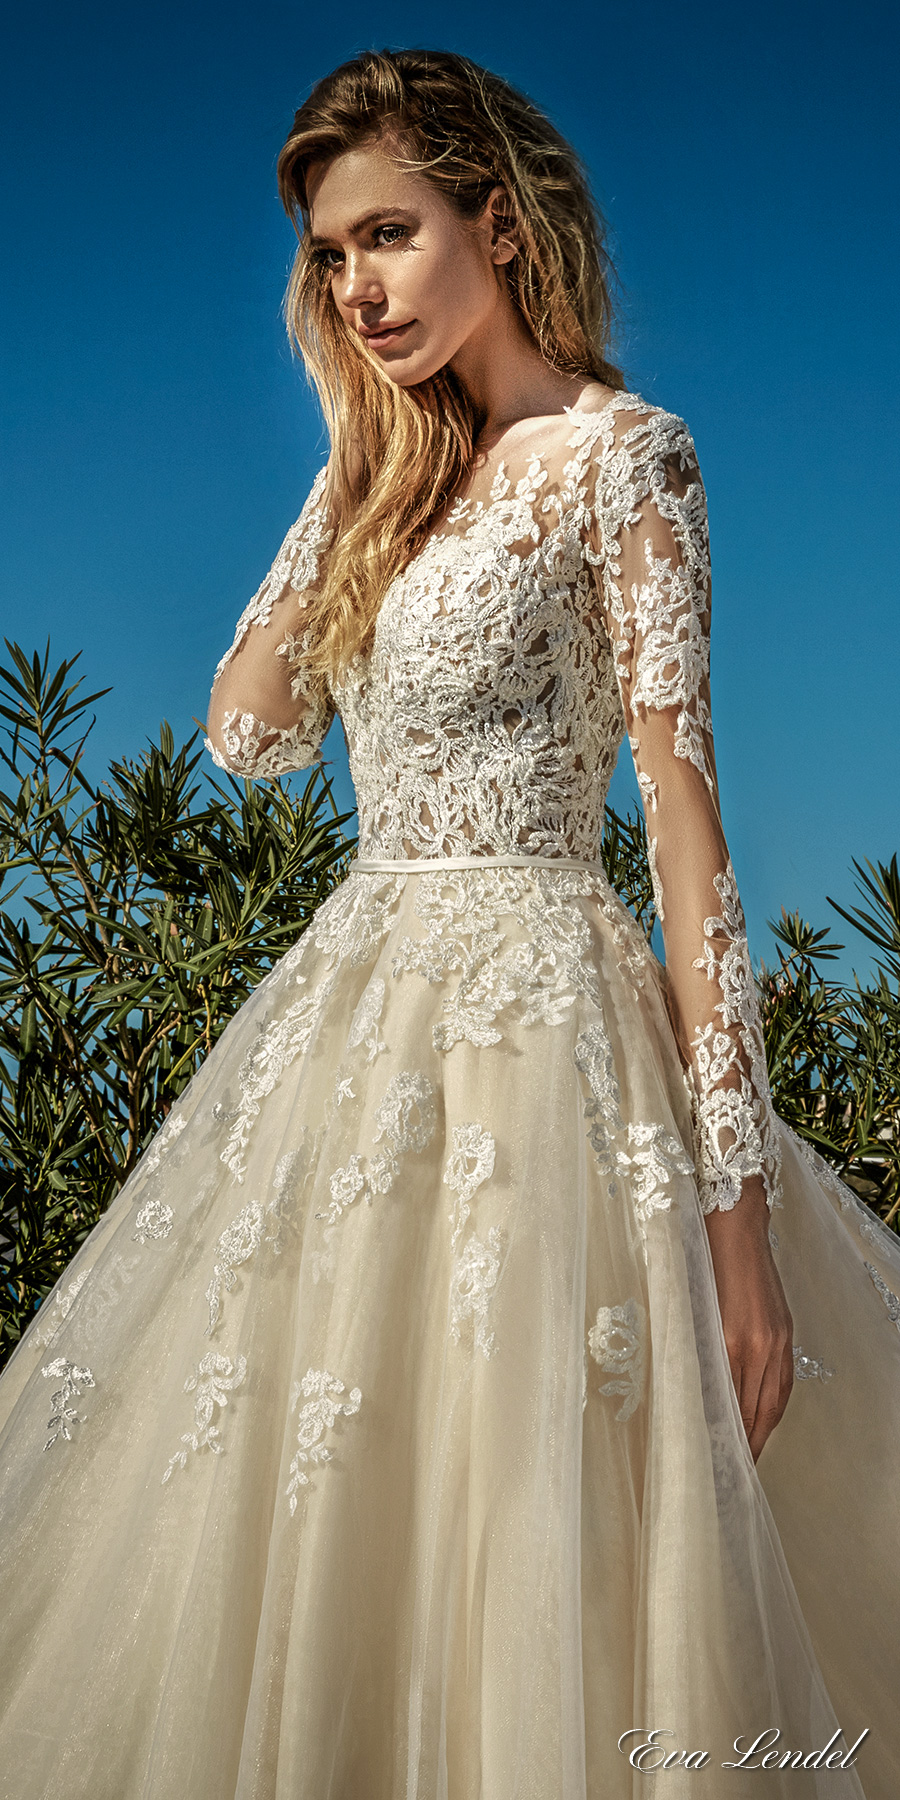 7de2270314e eva lendel 2017 bridal long sleeves v neck heavily embellished bodice  romantic princess ivory a line